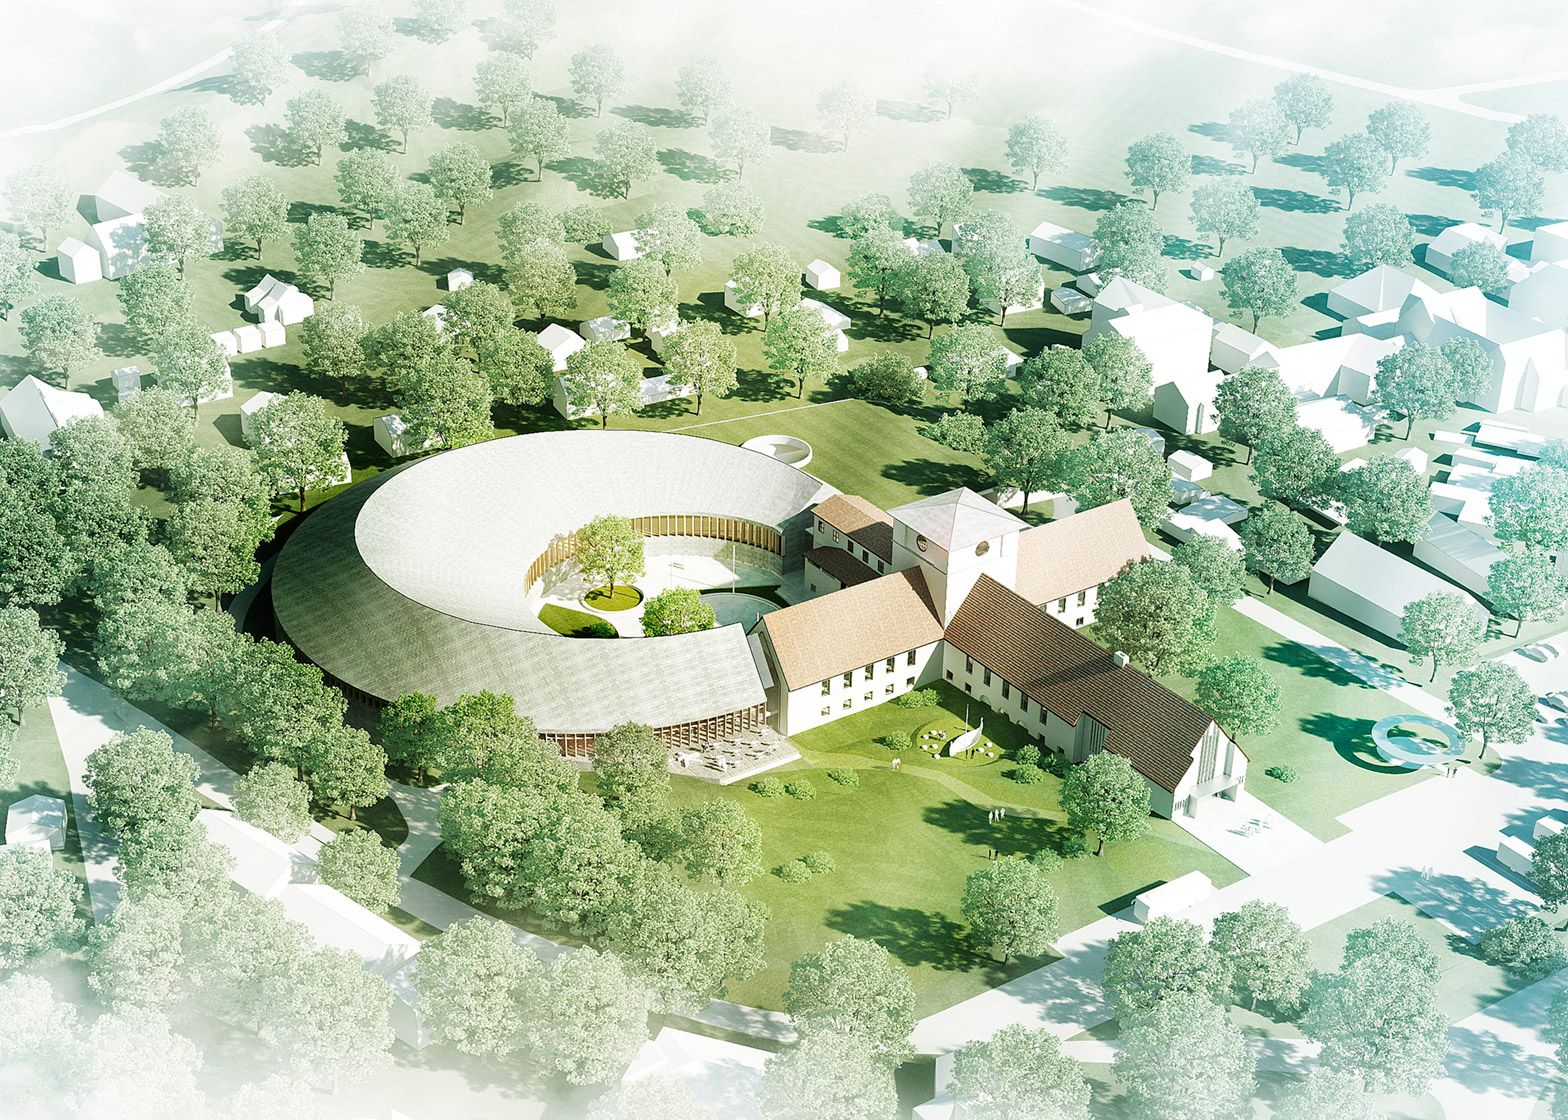 Nordic Firm Aart Has Won A Competition To Extend The Viking Age Museum Building In Oslo With Plans To Add A N With Images Viking Museum Cultural Architecture Architecture